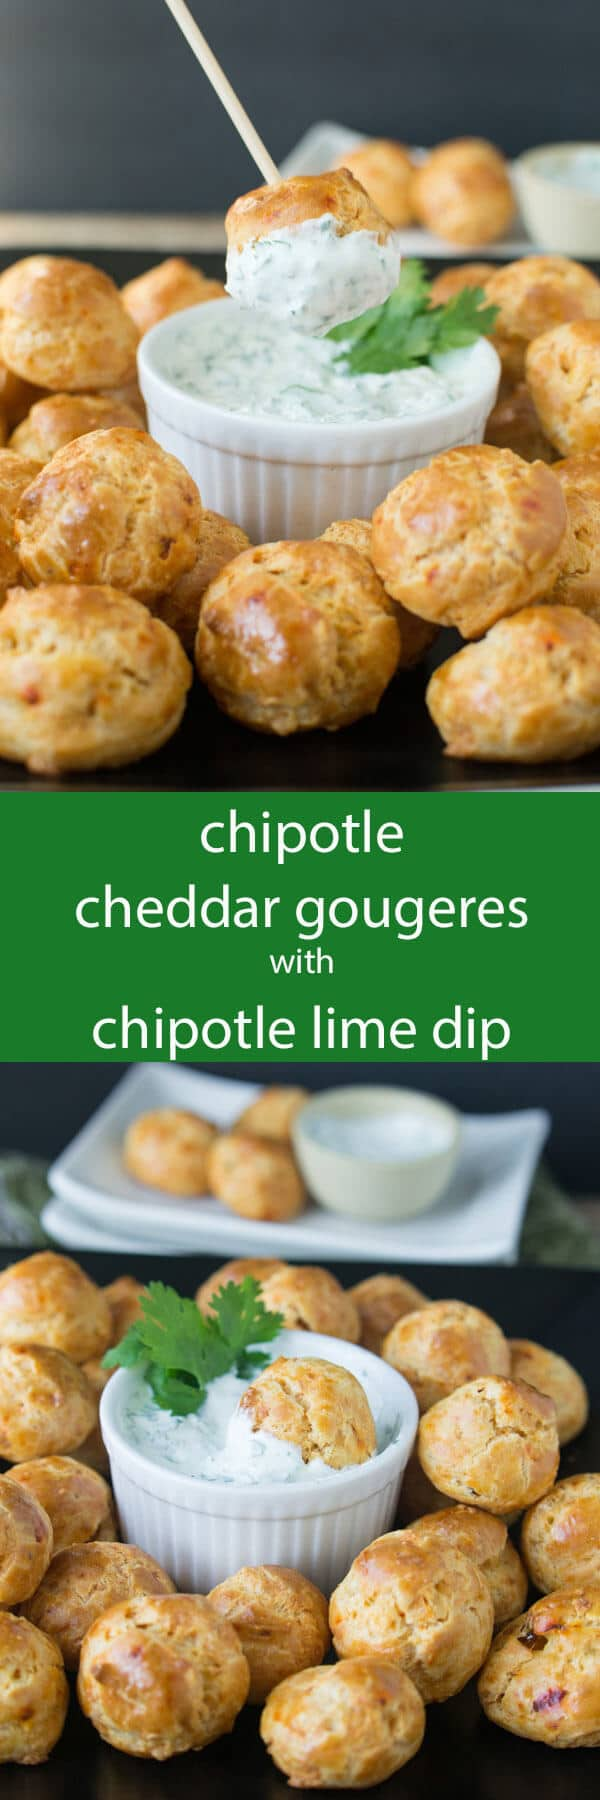 Chipotle Cheddar Gougeres with Chipotle Lime Dipping Sauce: Crispy gougere puffs flavored with chipotle and cheddar served with a cool cilantro lime dip. A great party appetizer!